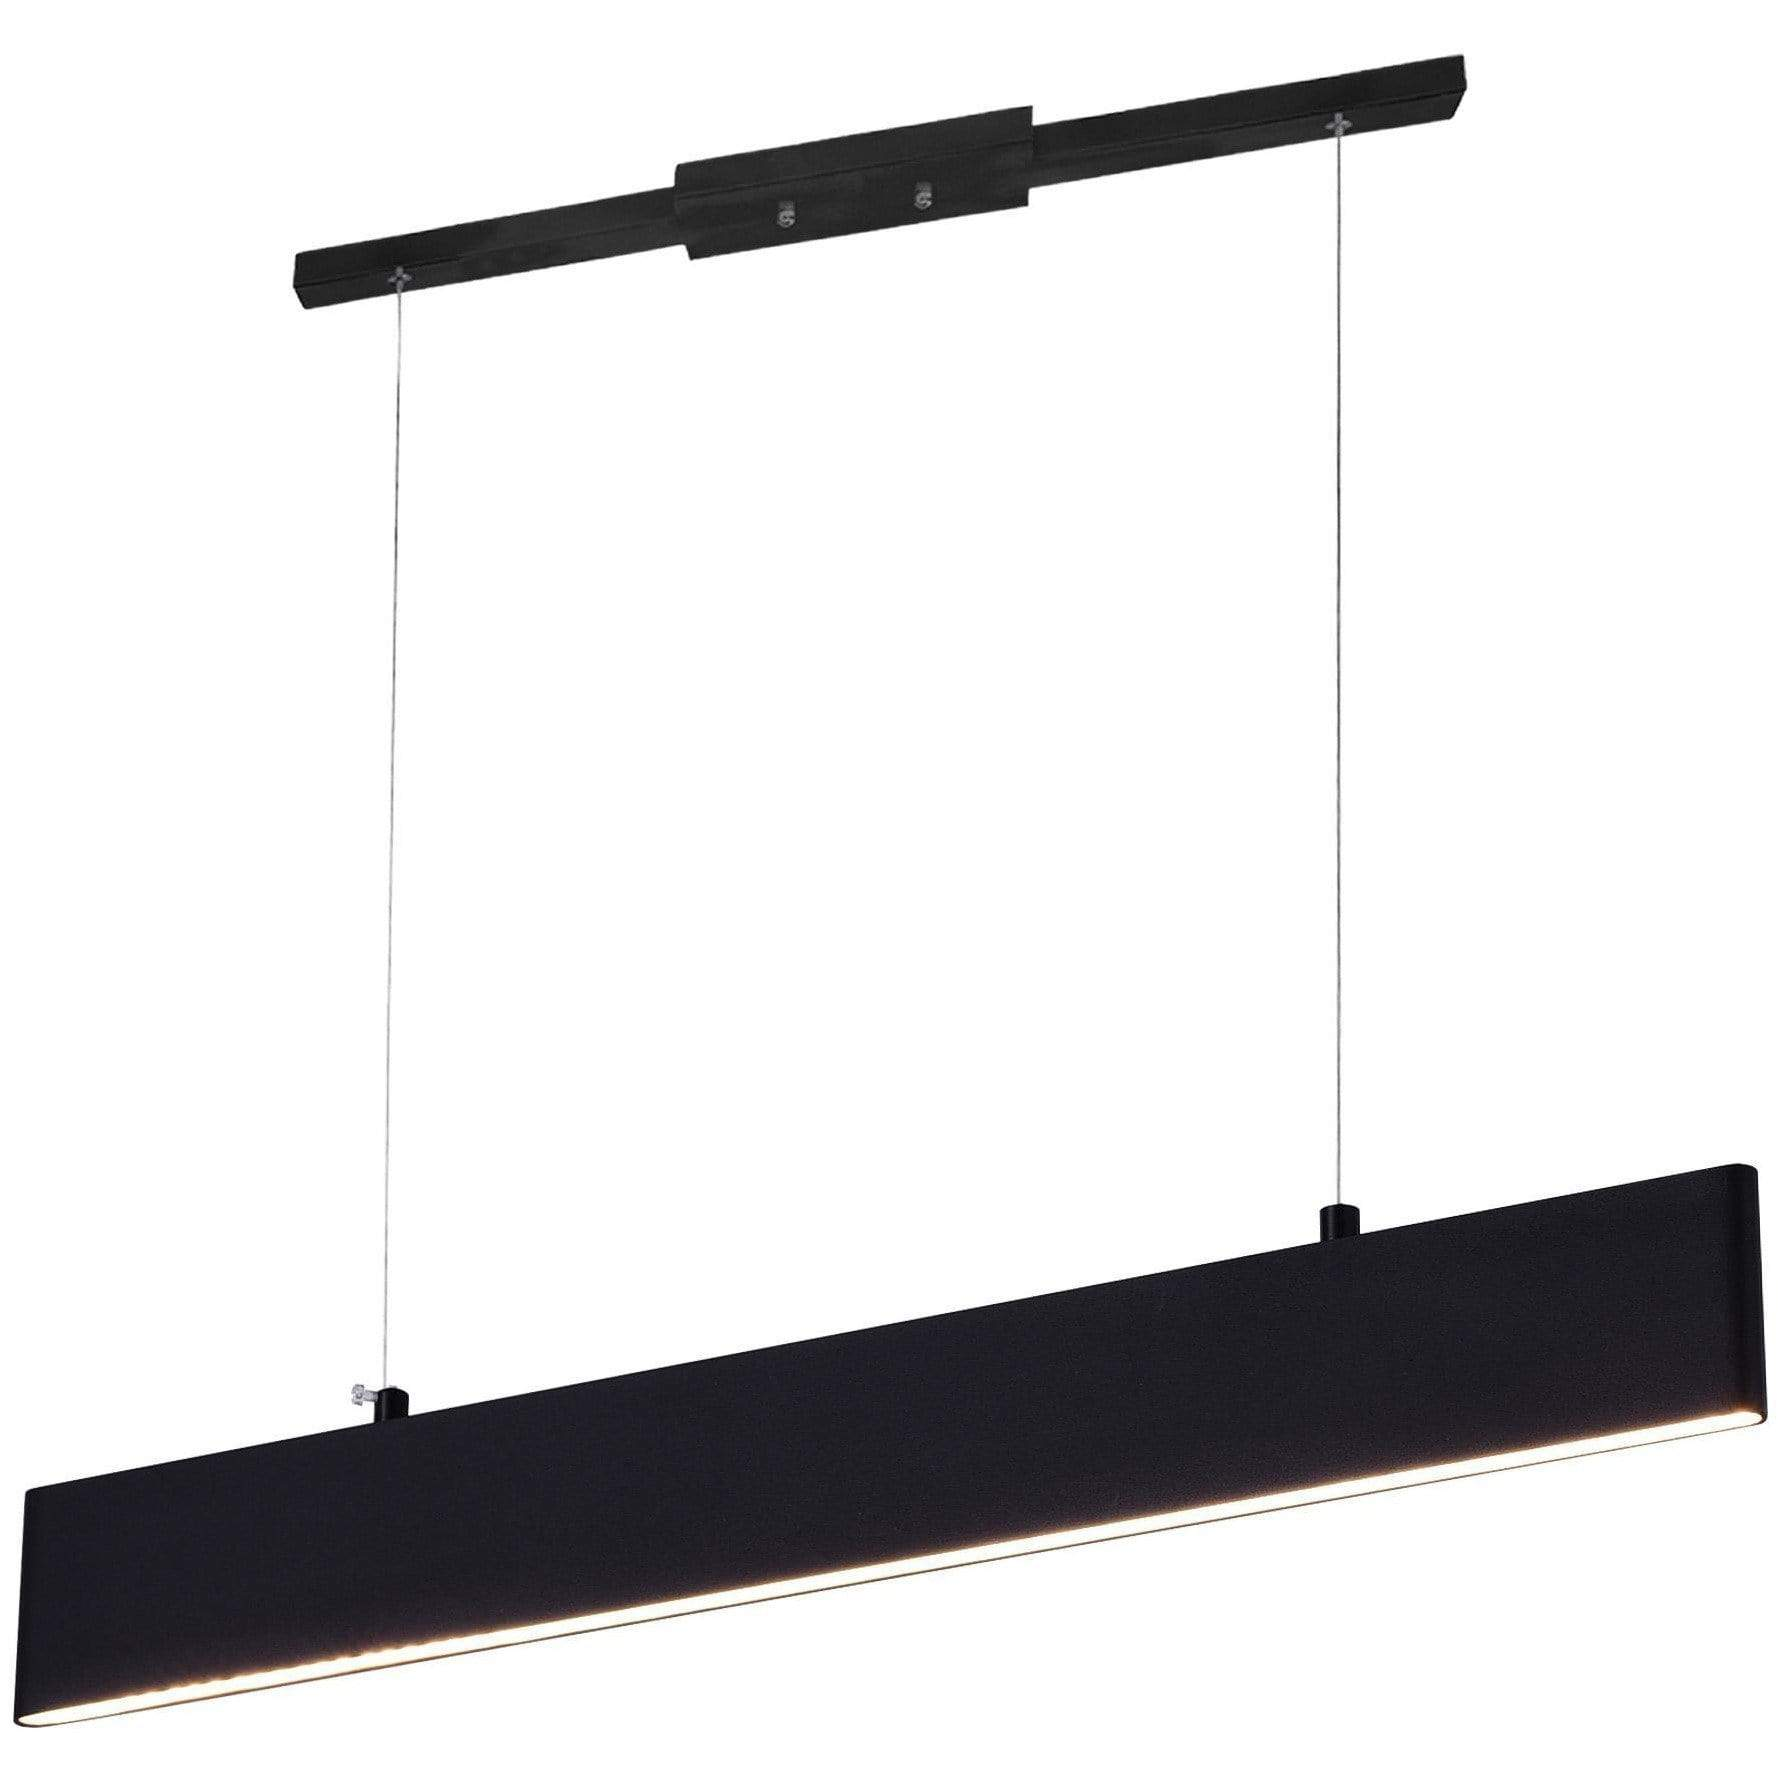 CWI Lighting Pool Table Lights Satin Black Krista LED Chandelier with Satin Black Finish by CWI Lighting 7145P25-1-253-RC